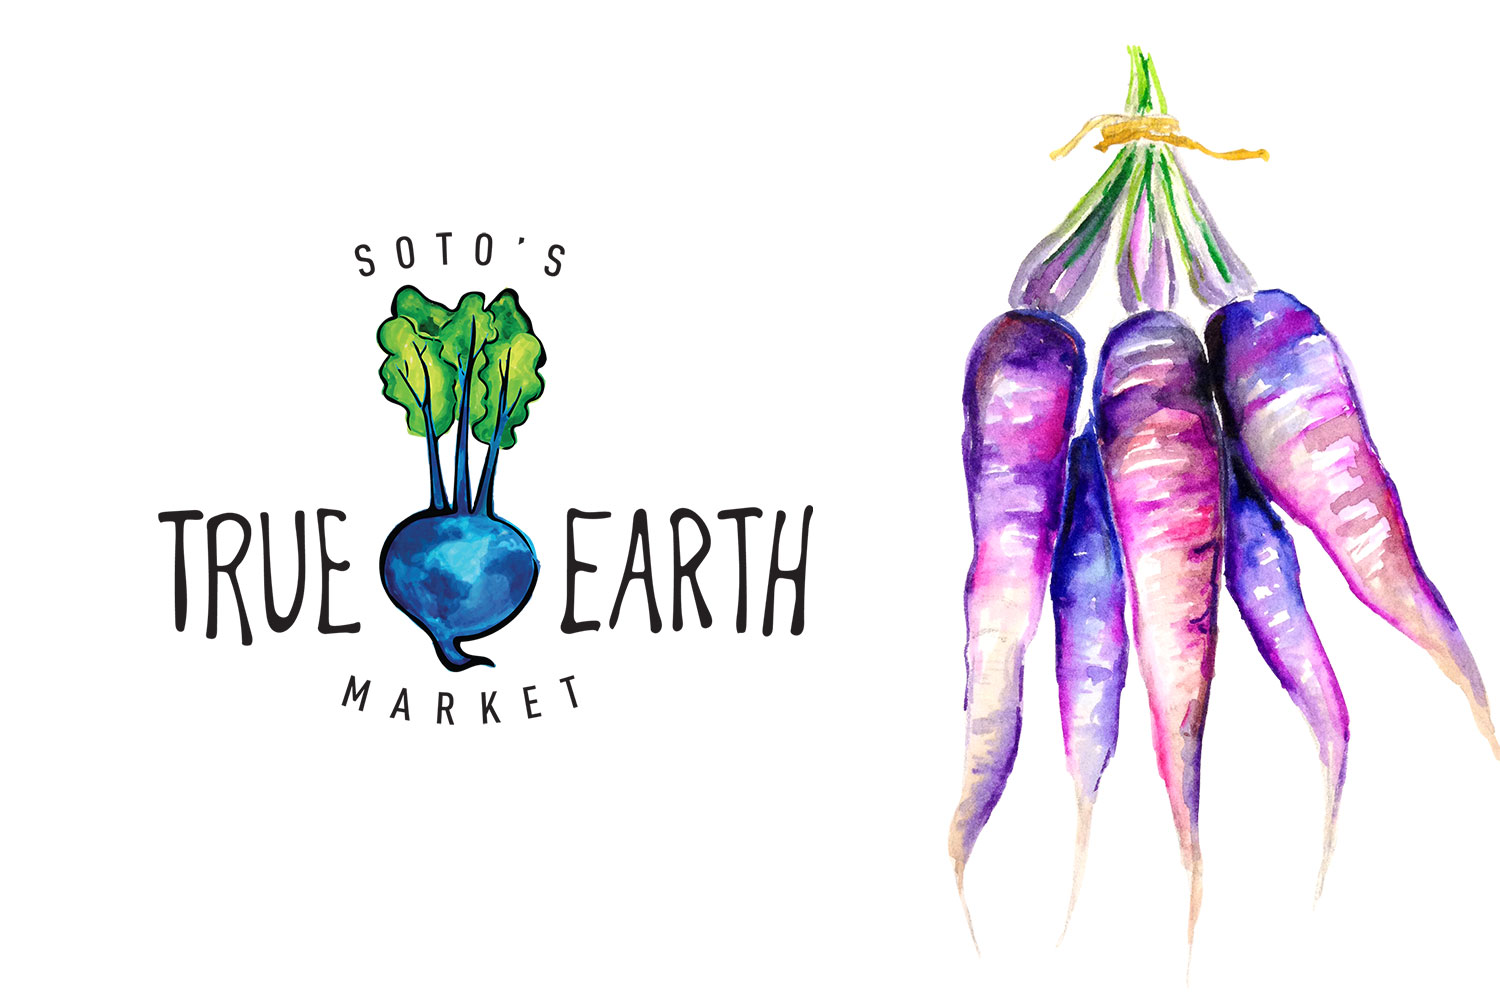 true earth healthfood market cambria, ca - healthfood logo